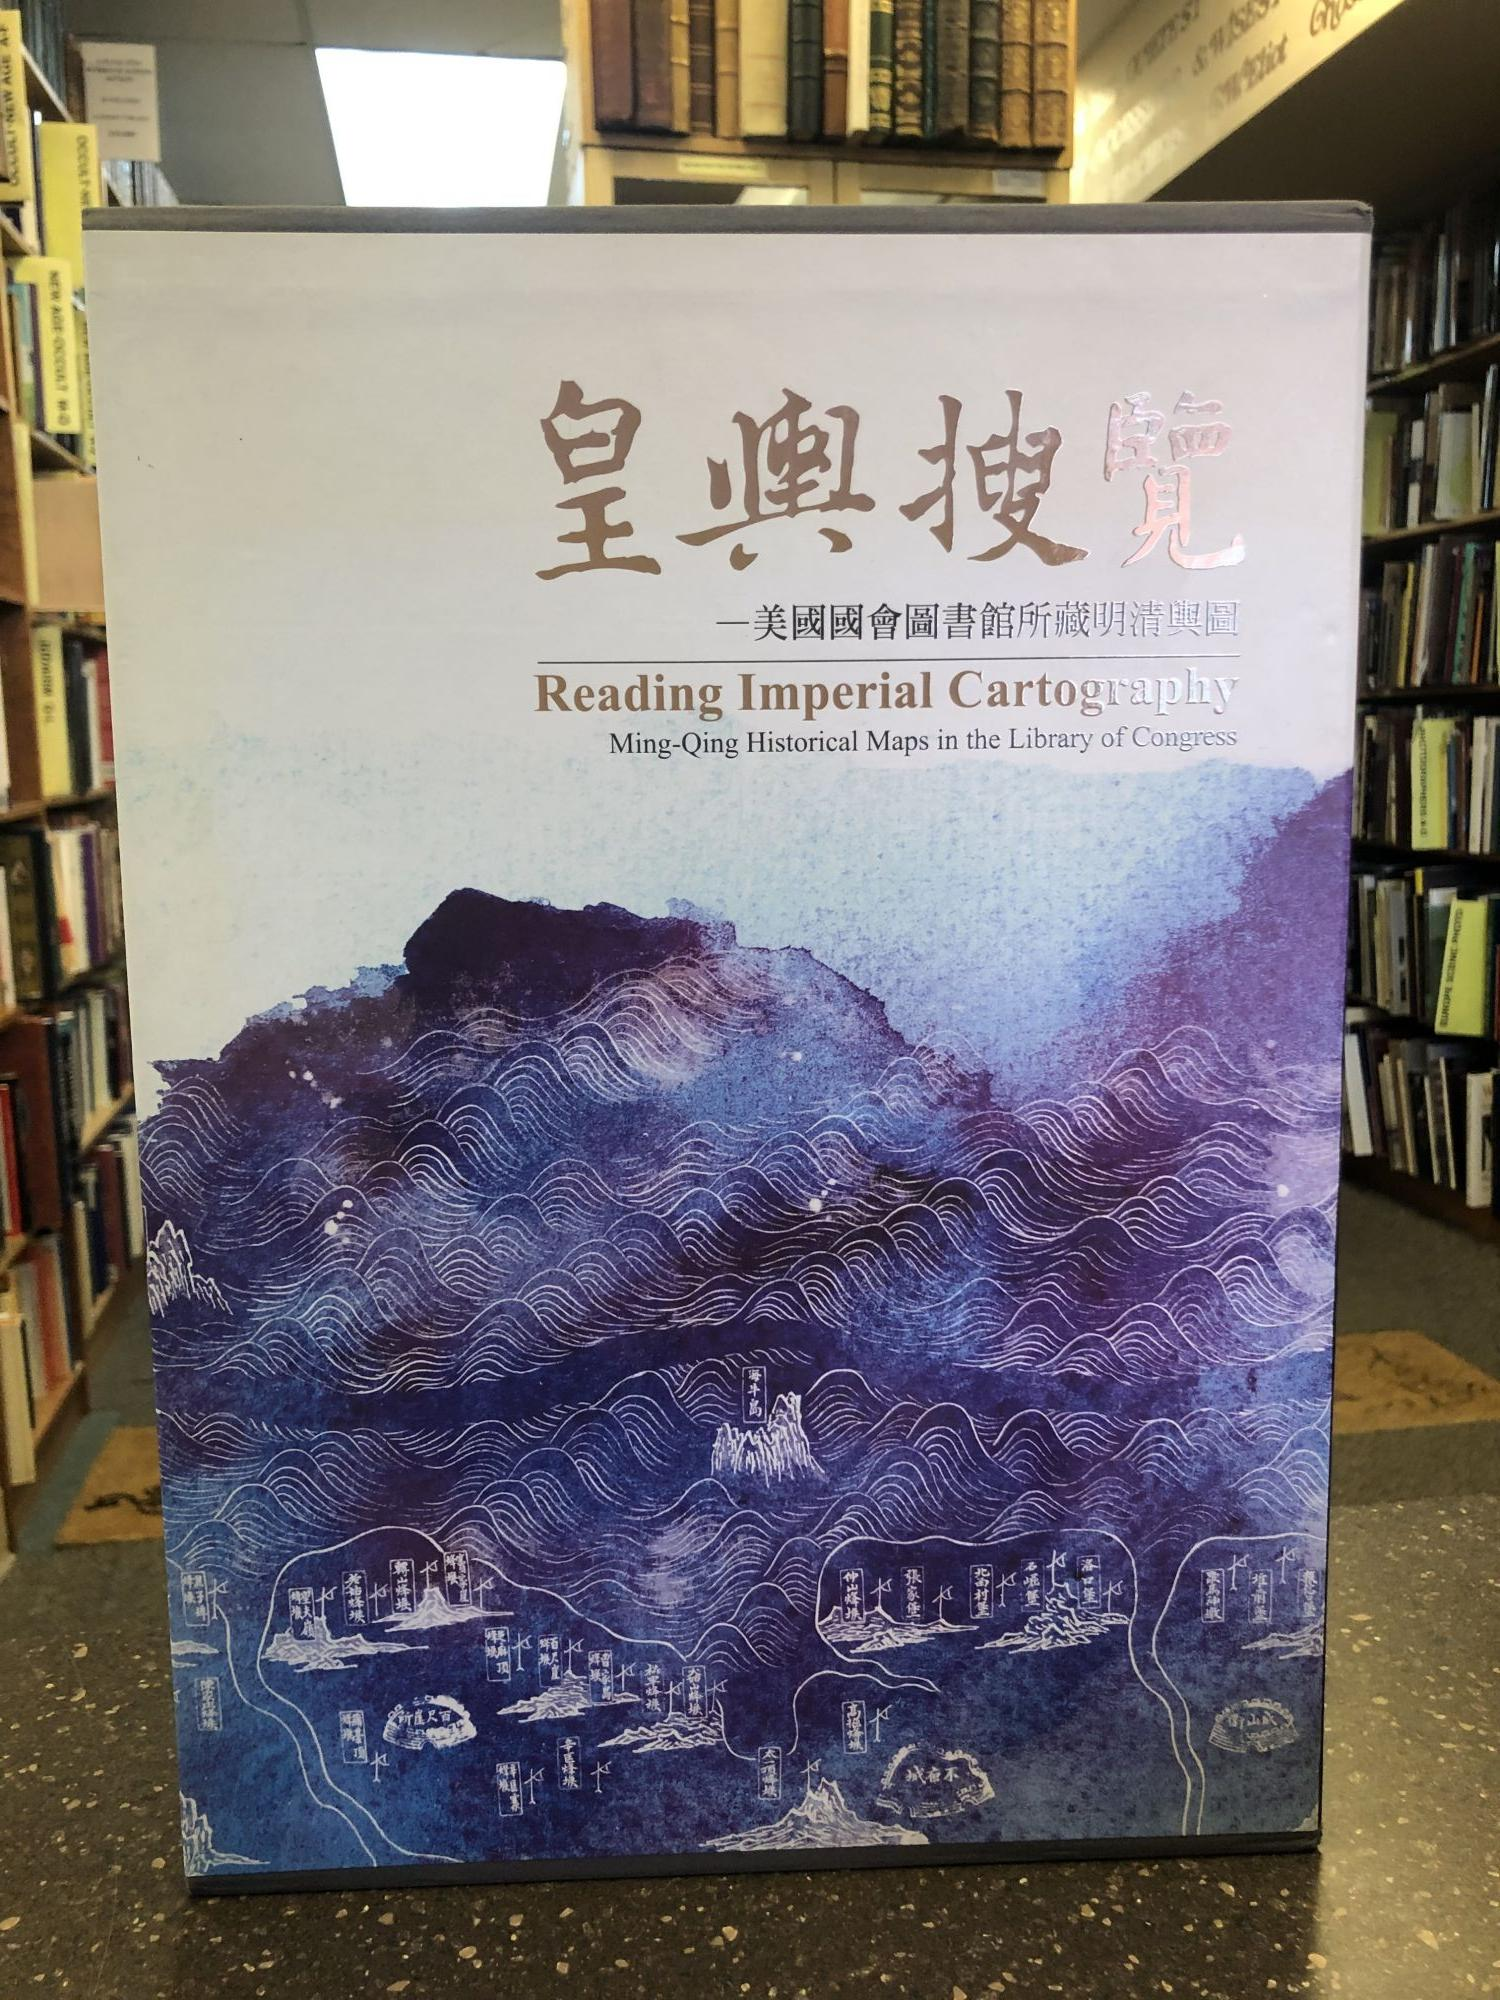 READING IMPERIAL CARTOGRAPHY: MING-QING HISTORICAL MAPS IN THE LIBRARY OF CONGRESS. Tieng-jen Lin, Min Zhang.